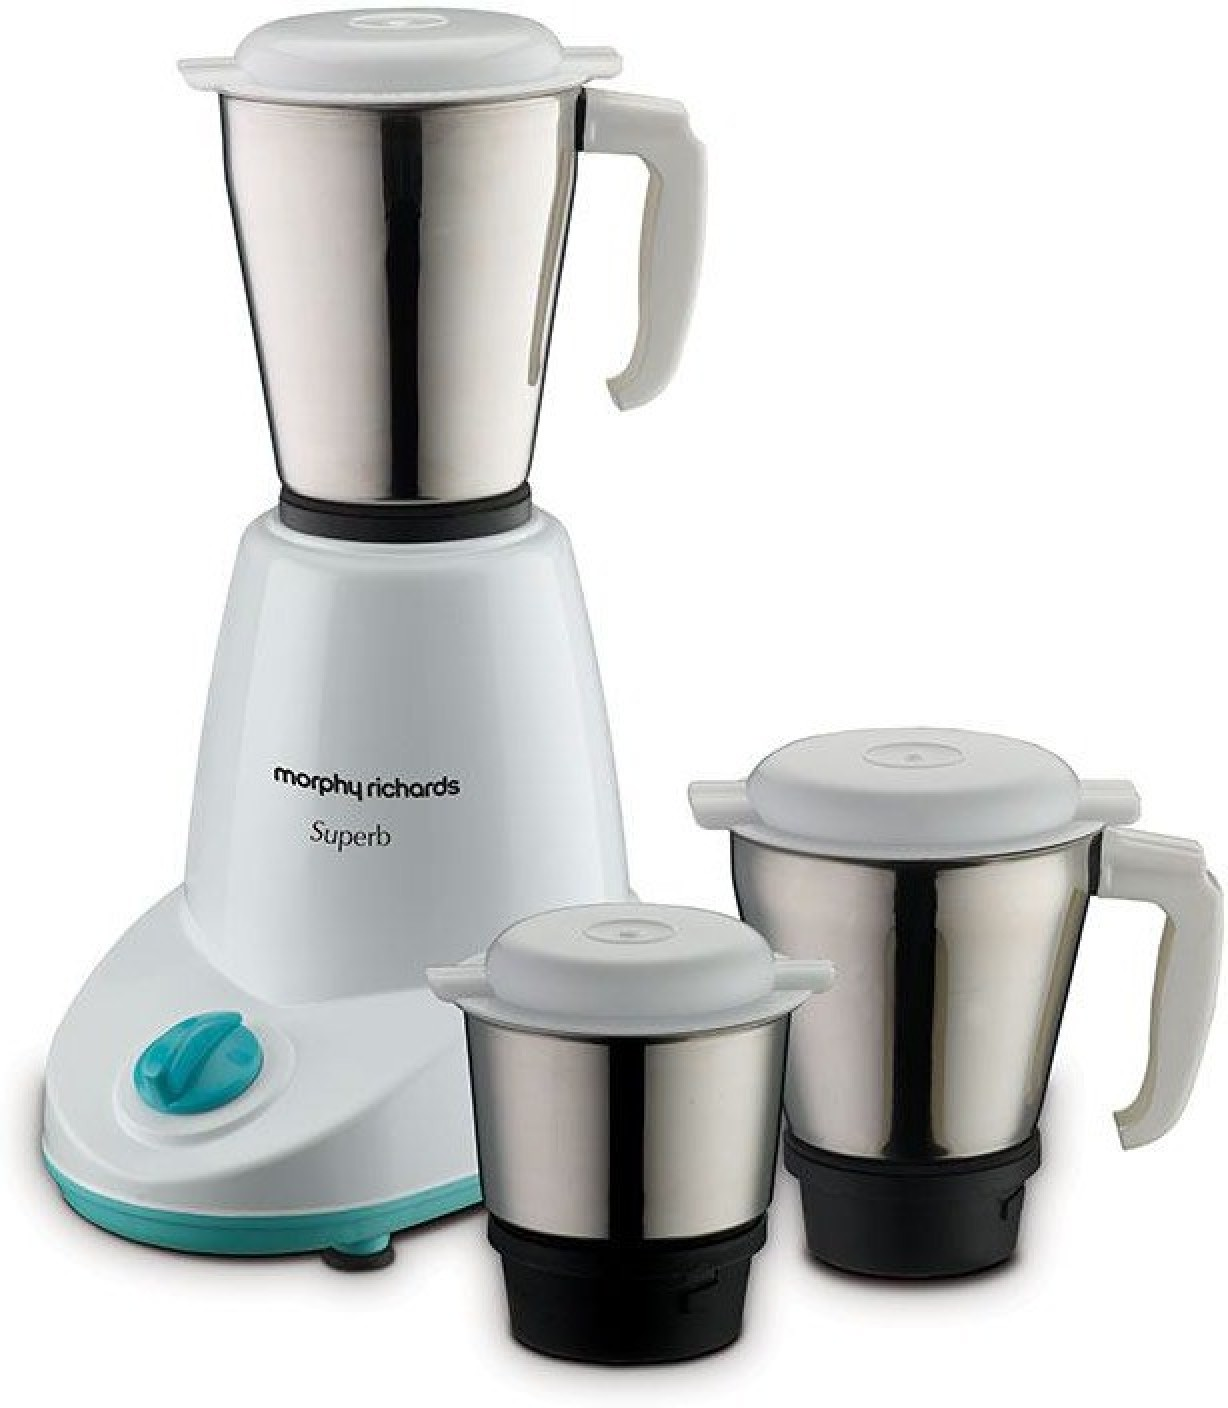 Morphy Richards India: Morphy Richards Superb 500 W Mixer Grinder Price In India